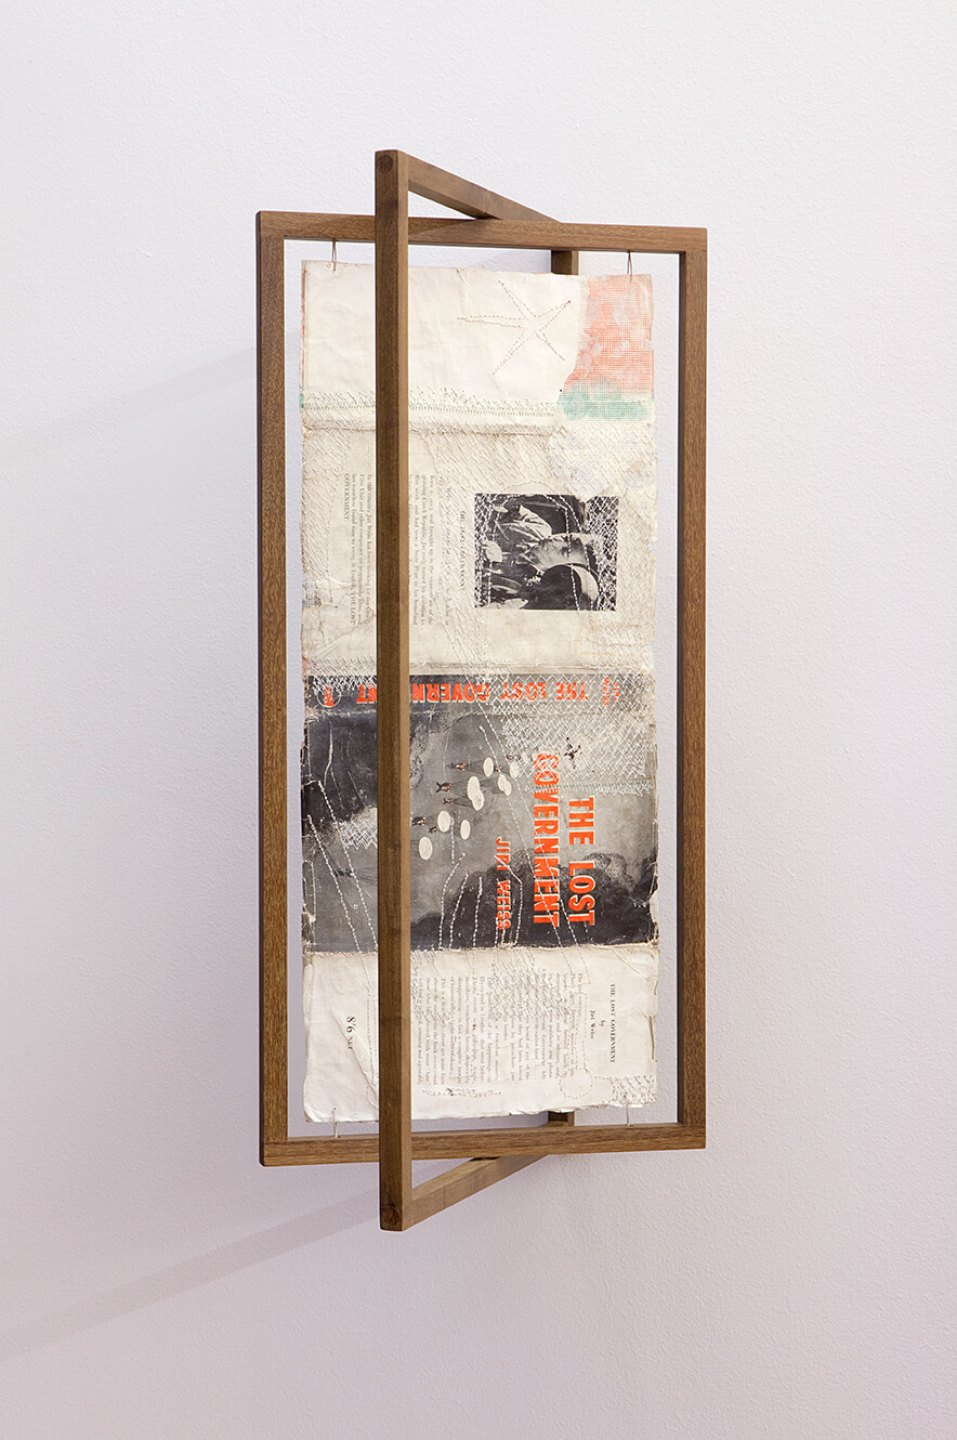 f.marquespeteado,<em>Dust Jacket</em>, 2004, gouaches on book embroidered by machine, 61×30×26 cm - Mendes Wood DM